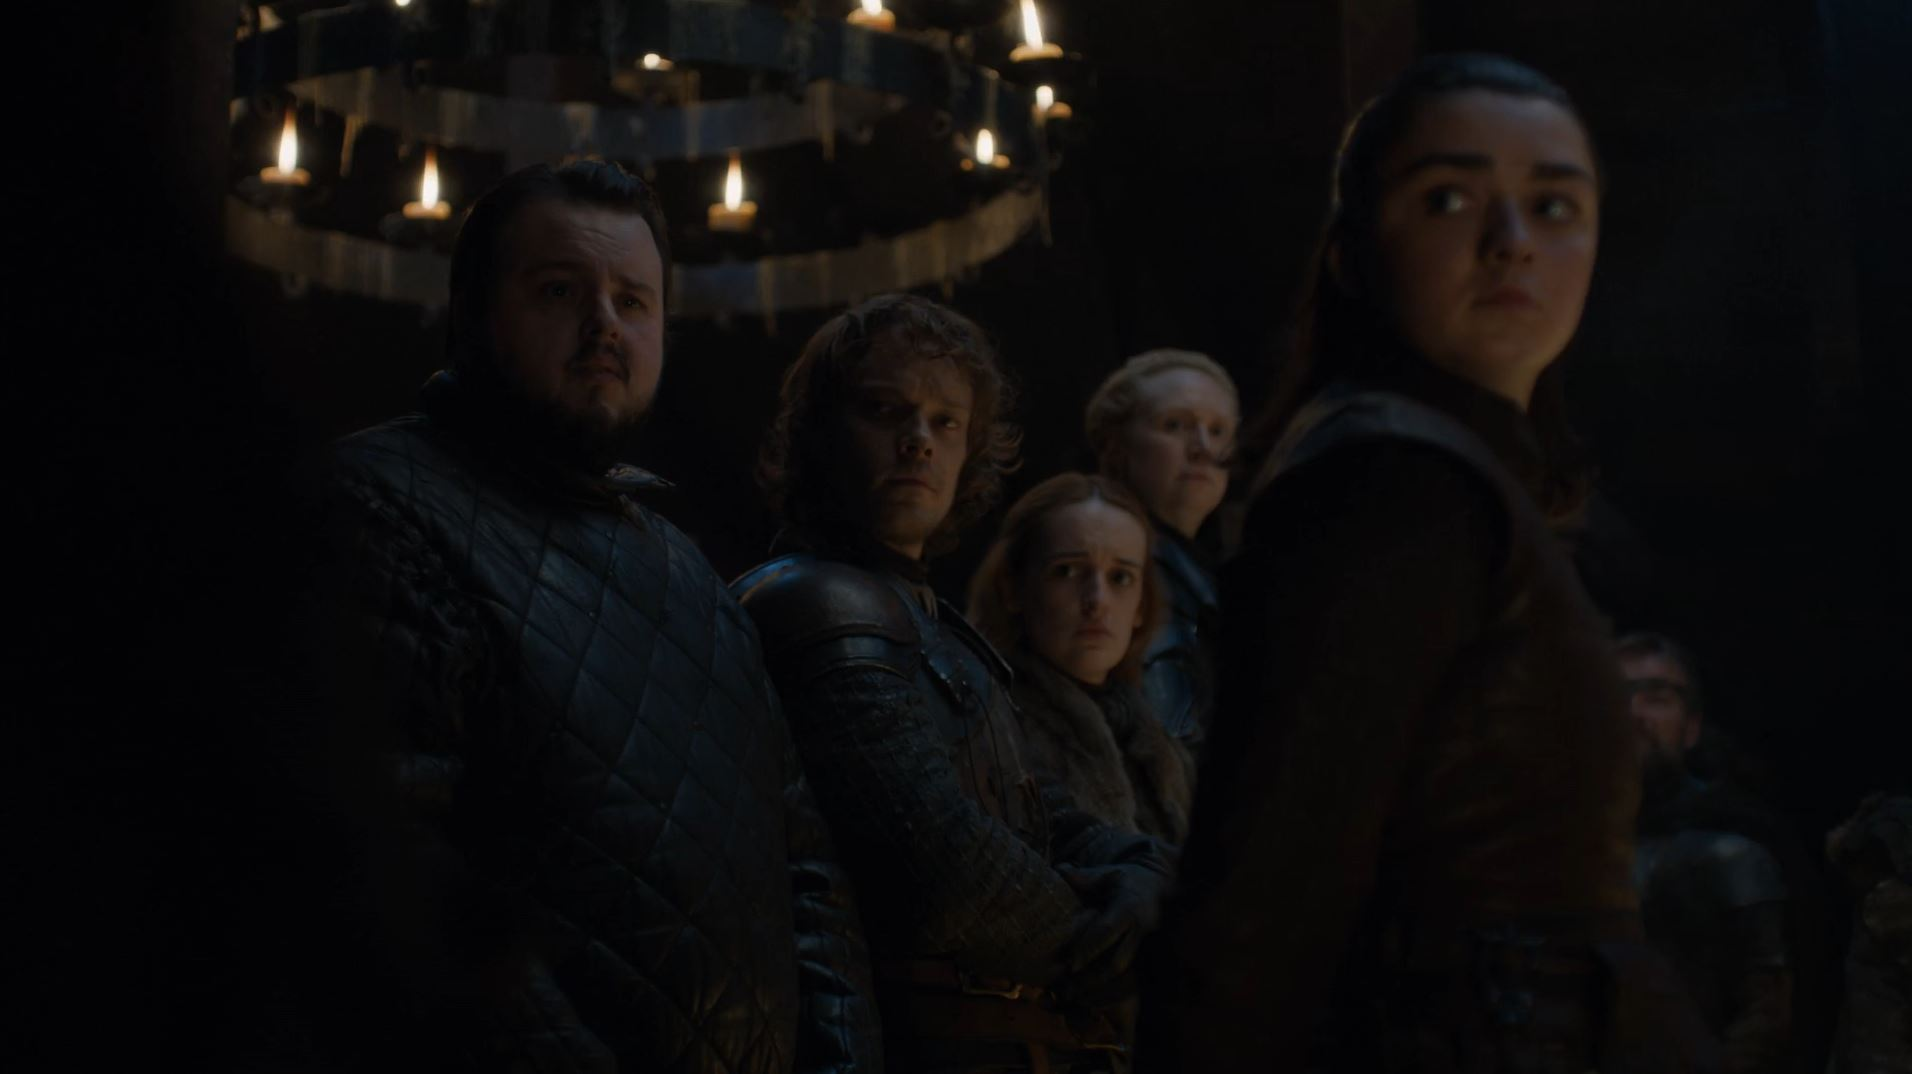 Game of Thrones season 8, episode 2 analysis: A Knight of the Seven